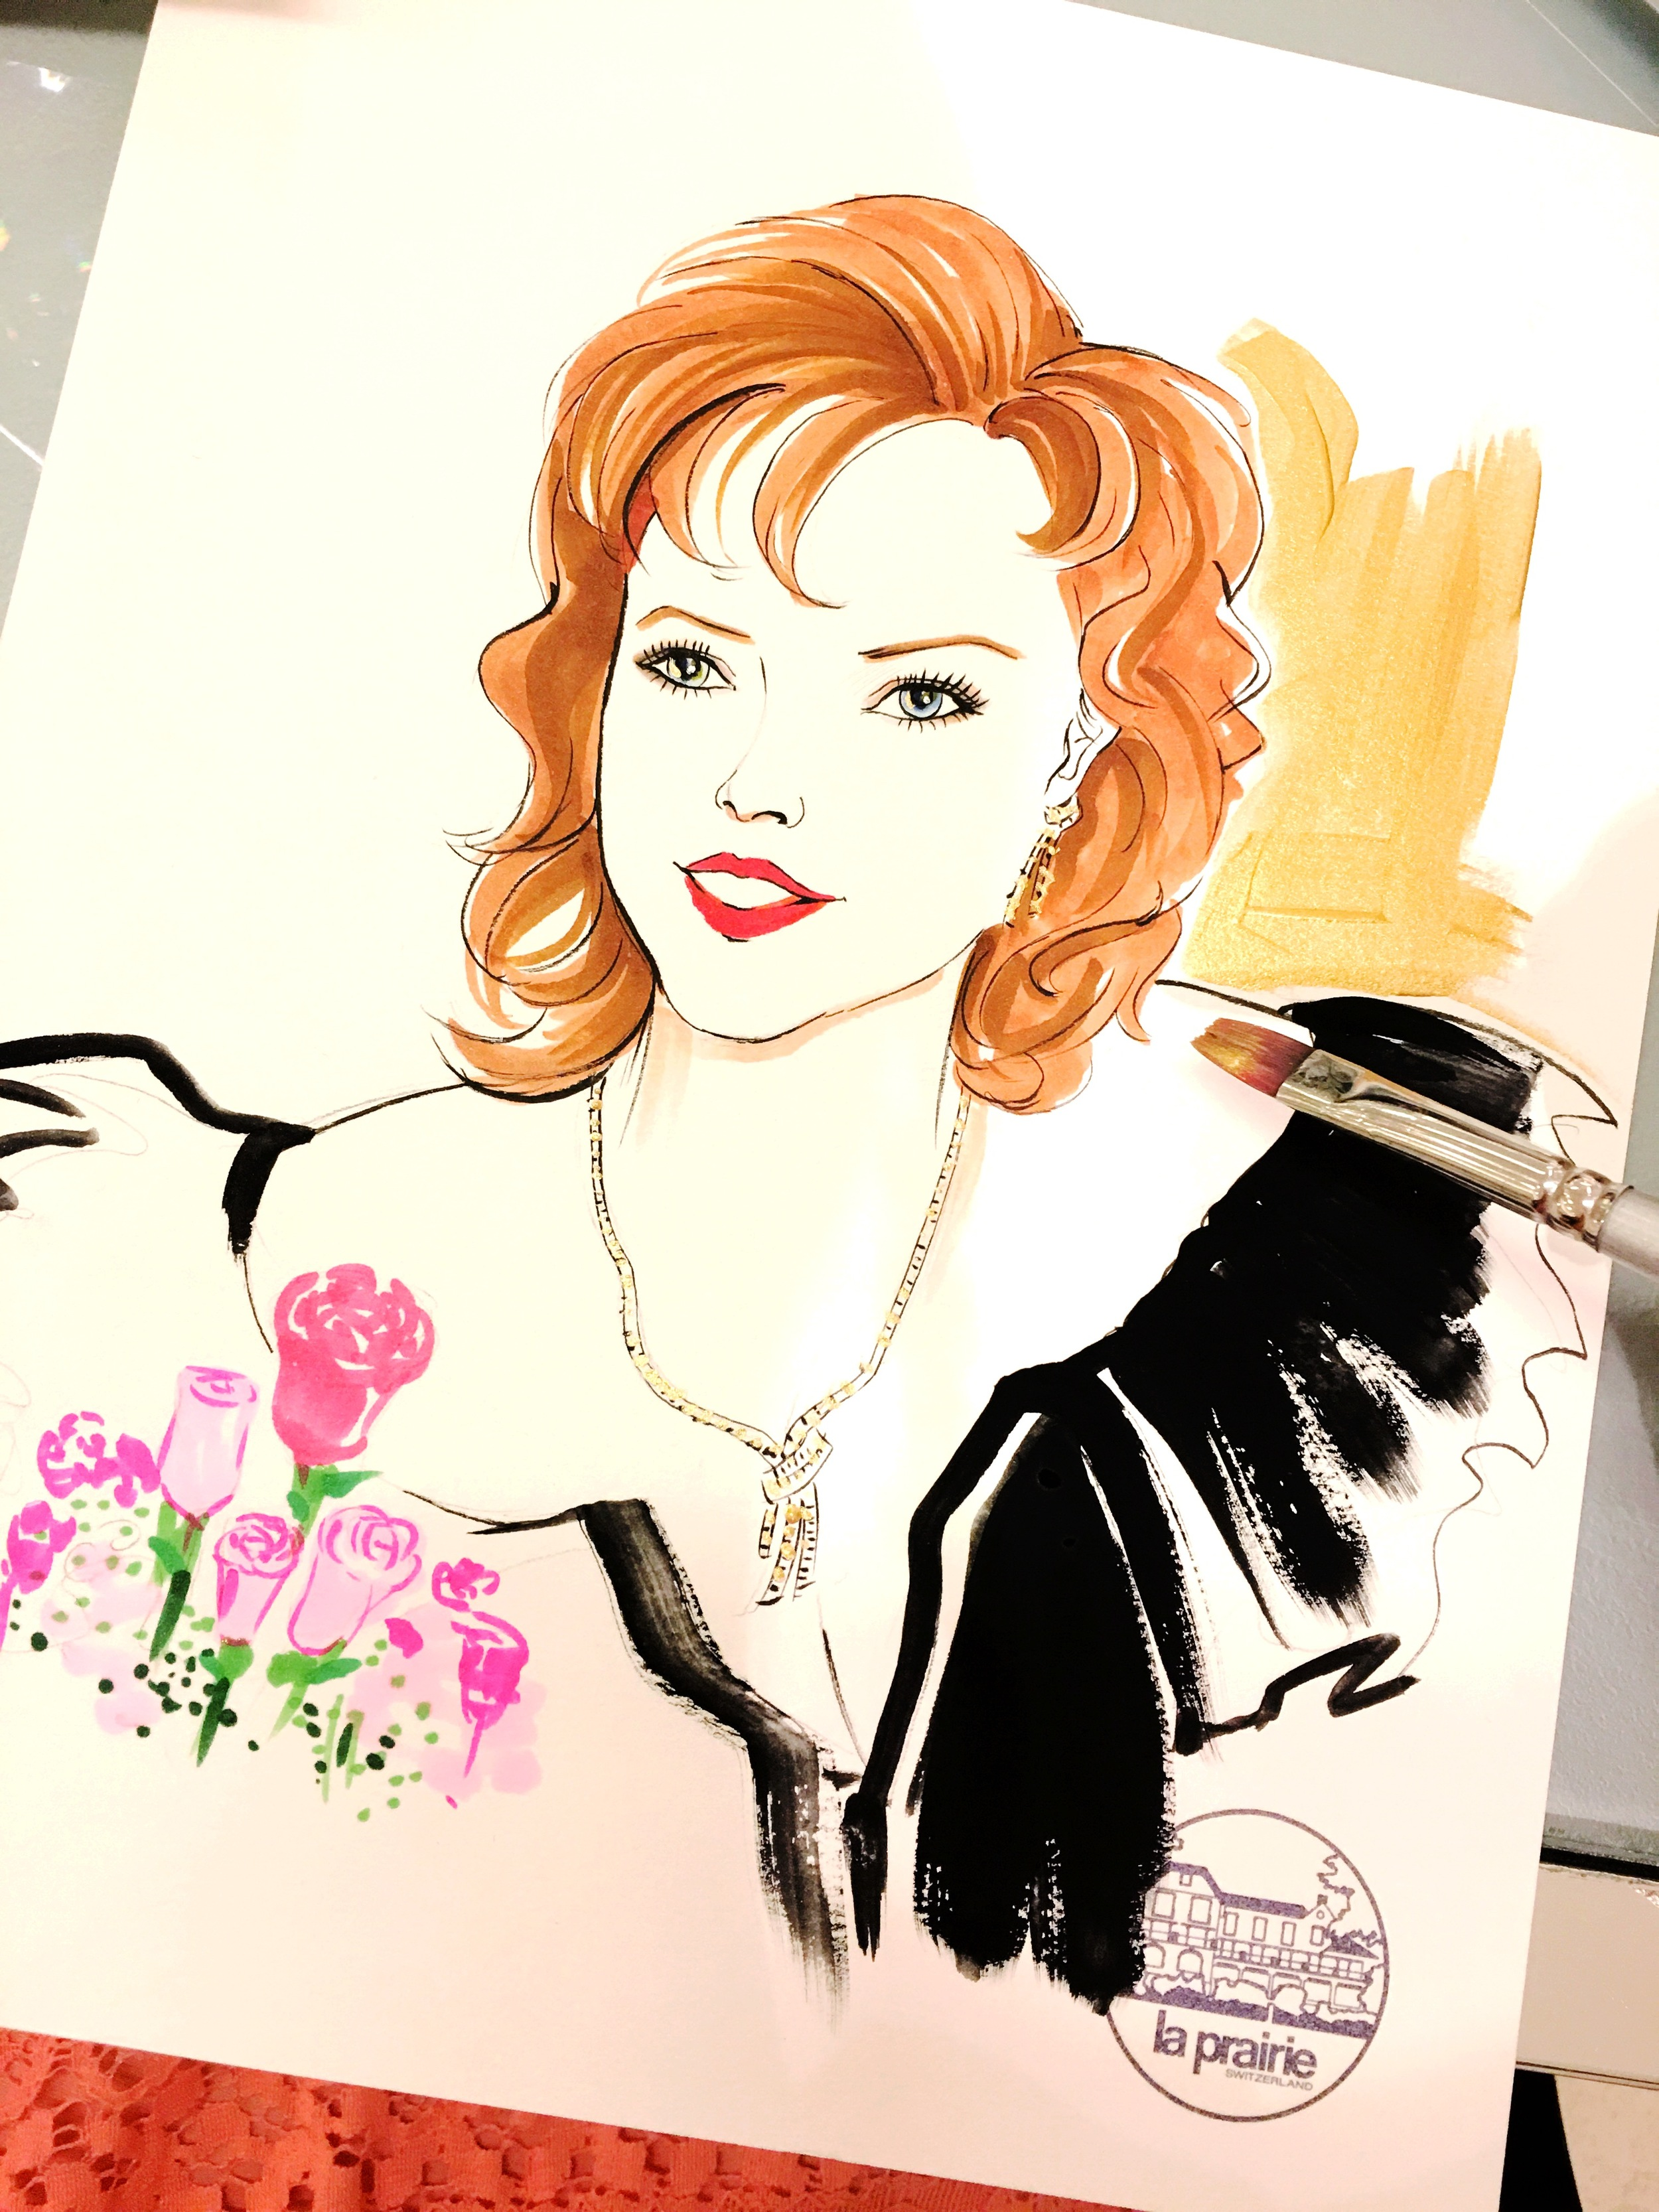 La-Prairie-live-sketch-event-at-Saks fifth avenue-Houston-by-fashion-illustrator-Rongrong-DeVoe--2